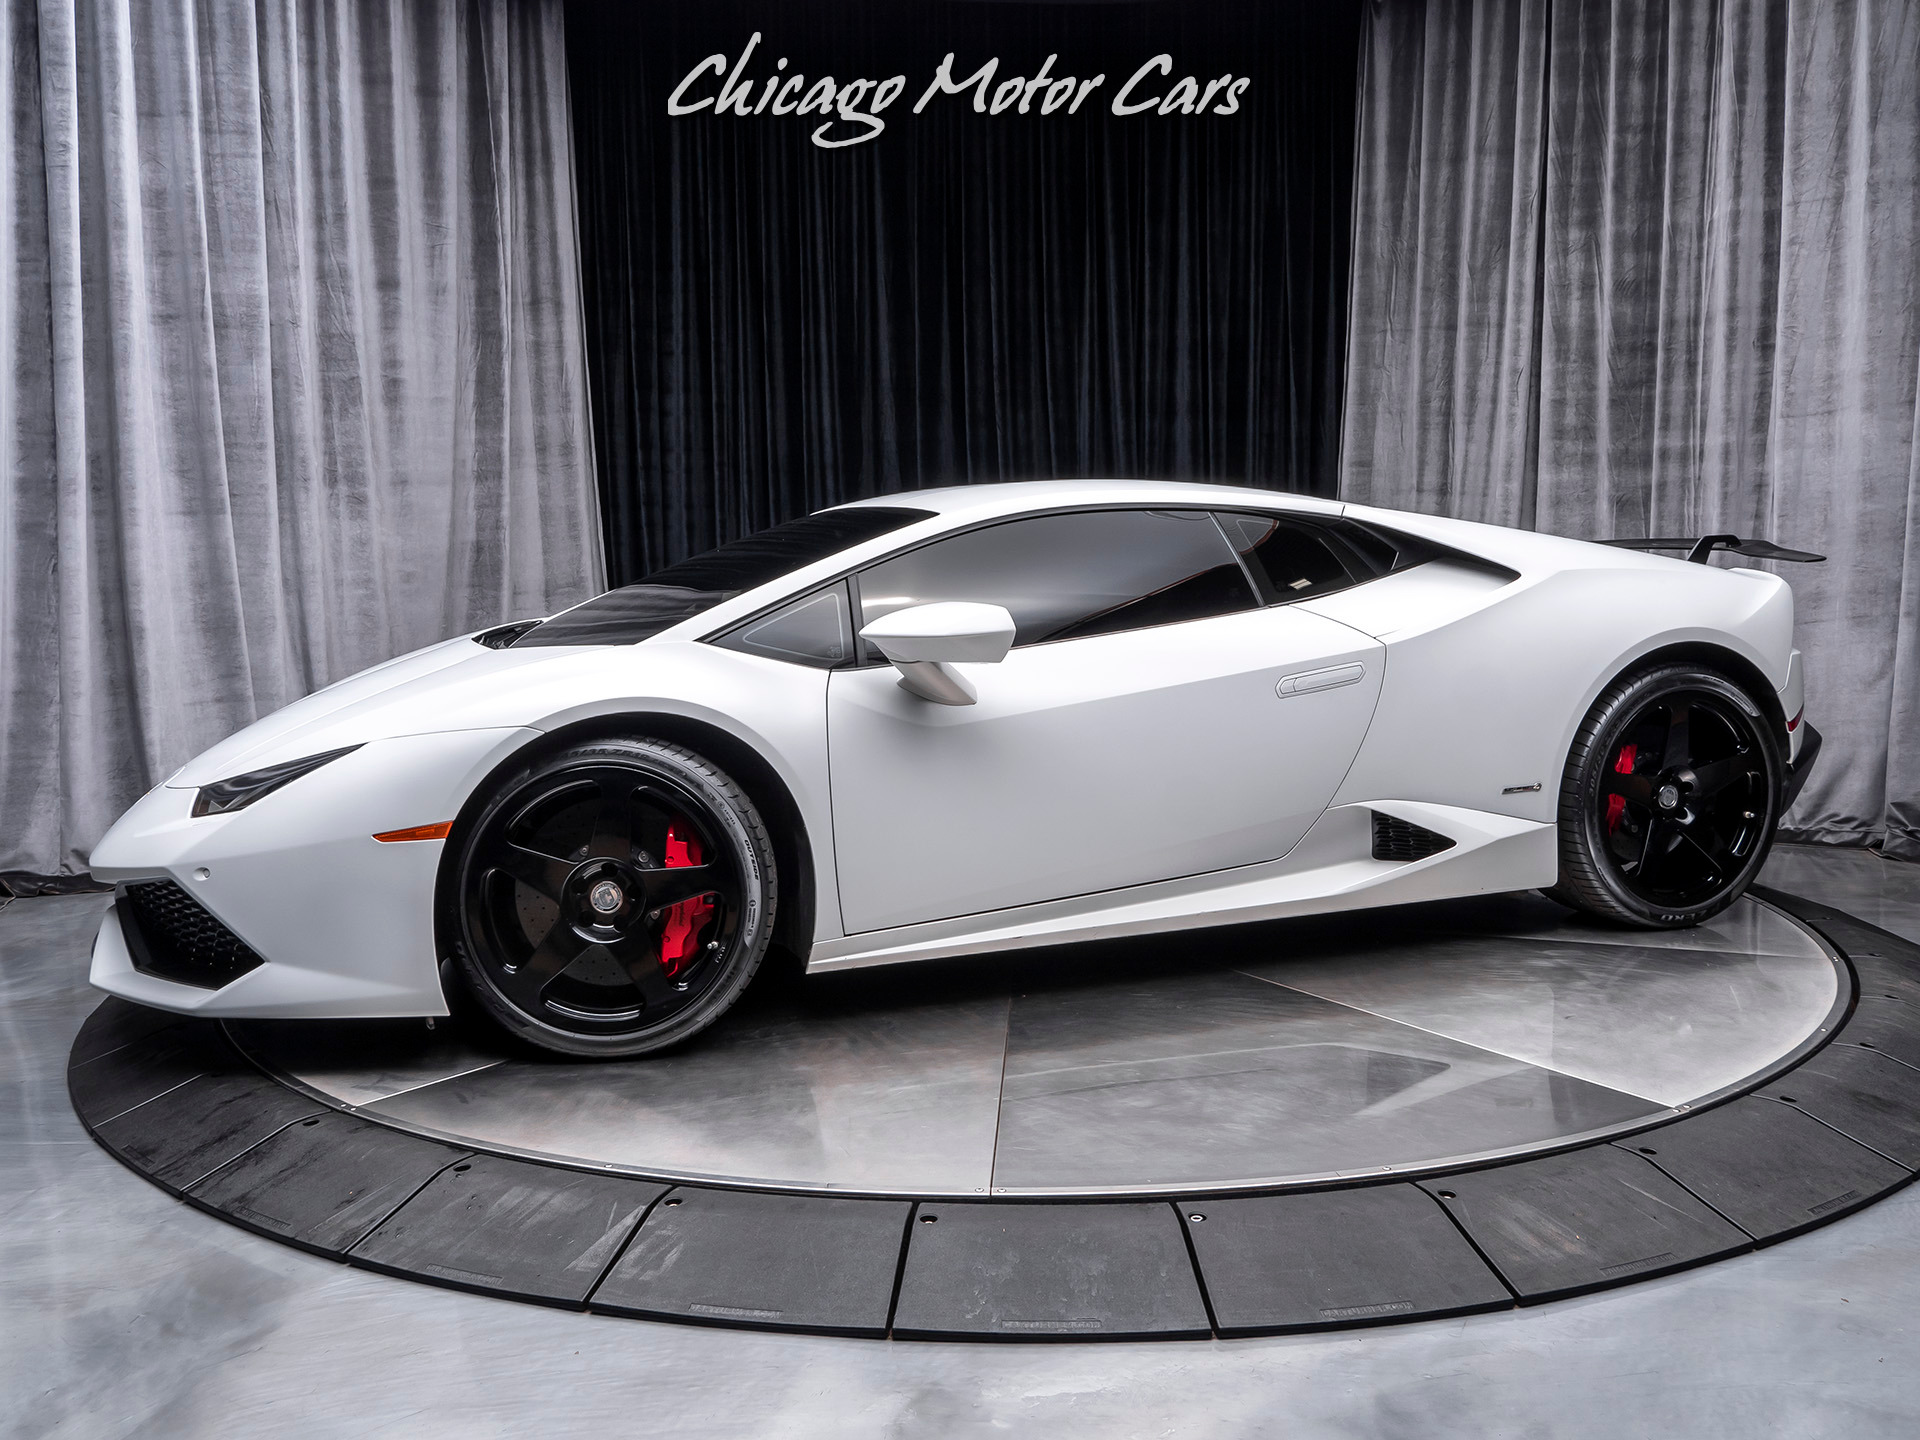 Chicago Motor Cars >> Used 2015 Lamborghini Huracan Lp610 4 Coupe Upgrades Hre